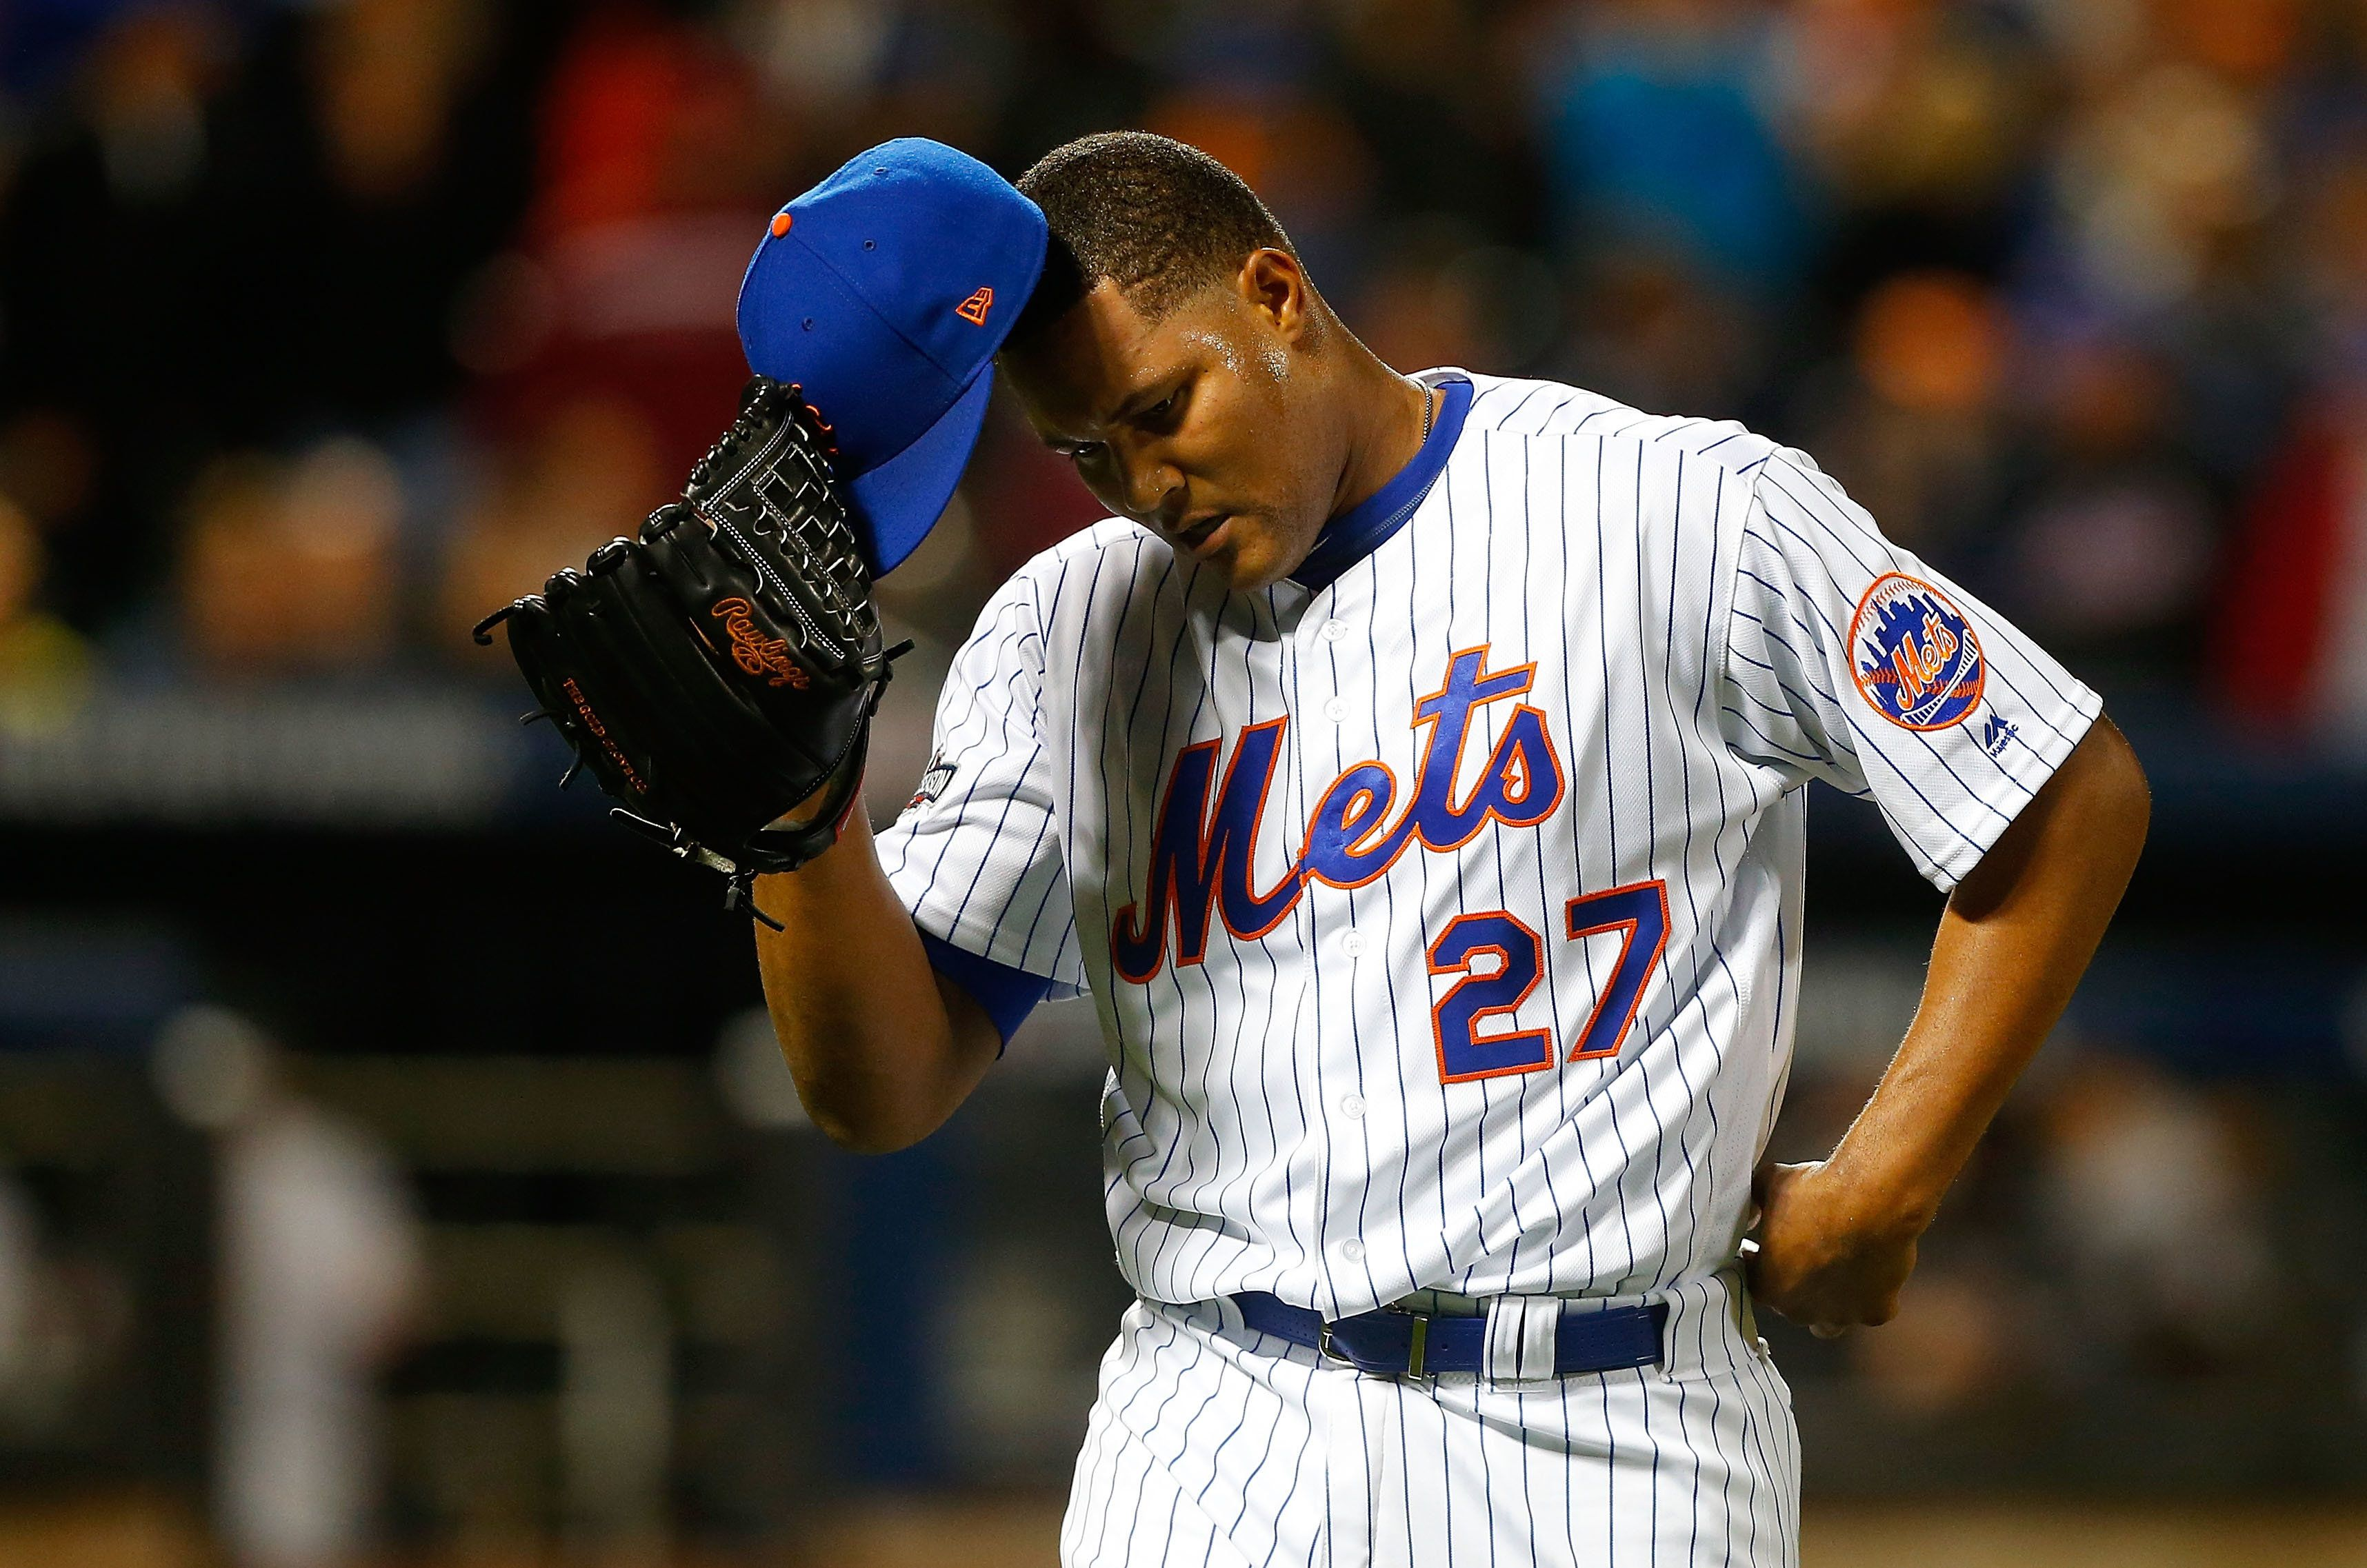 The New York Mets pitcher made$4.1 million this season.